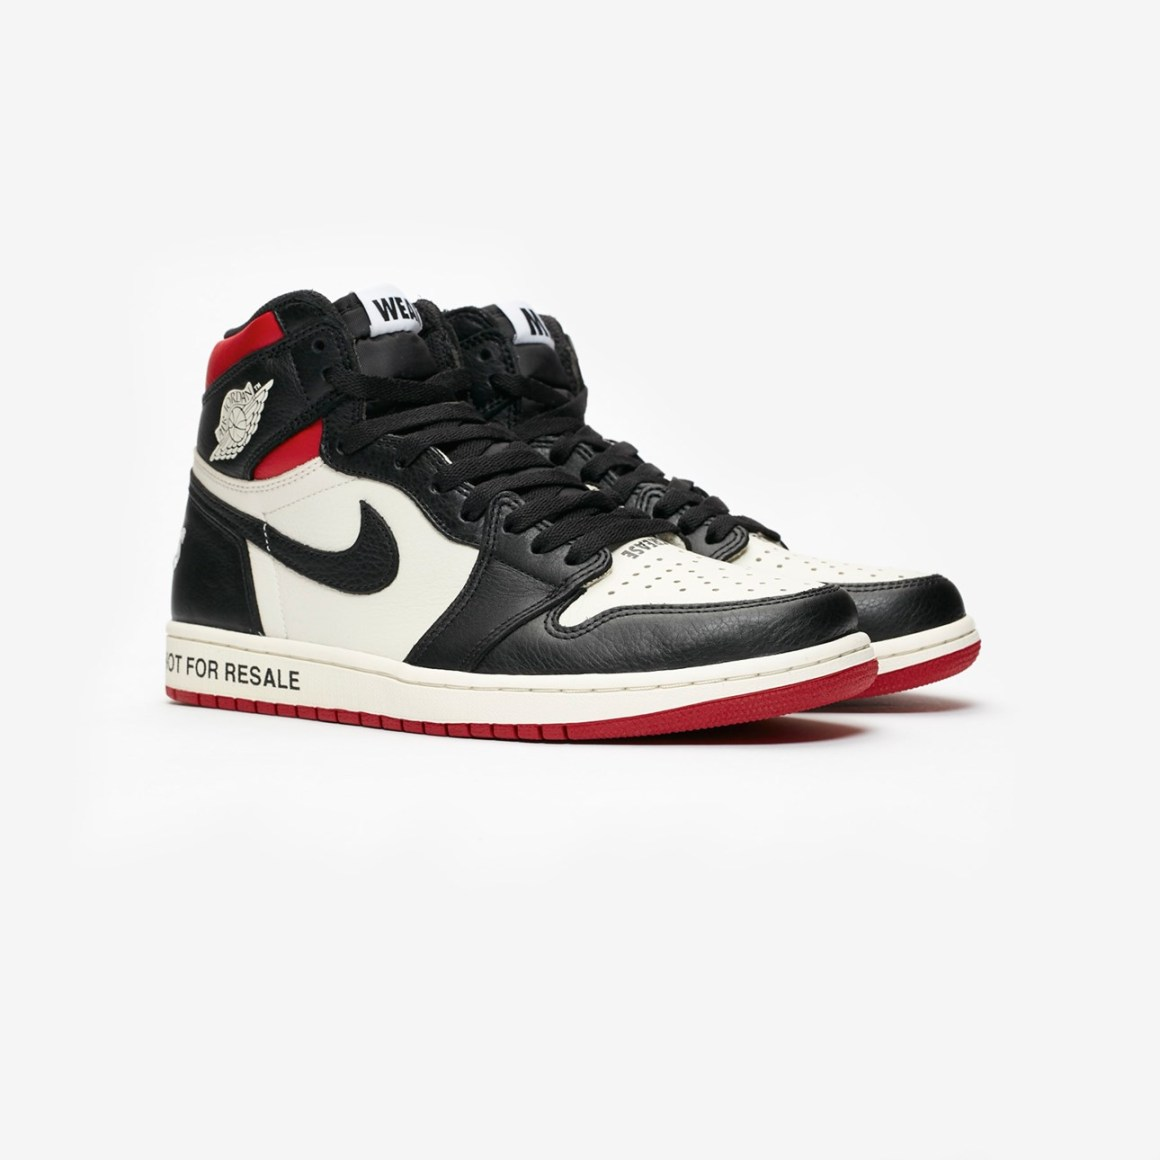 Jordan Brand Air Jordan 1 Retro High NRG